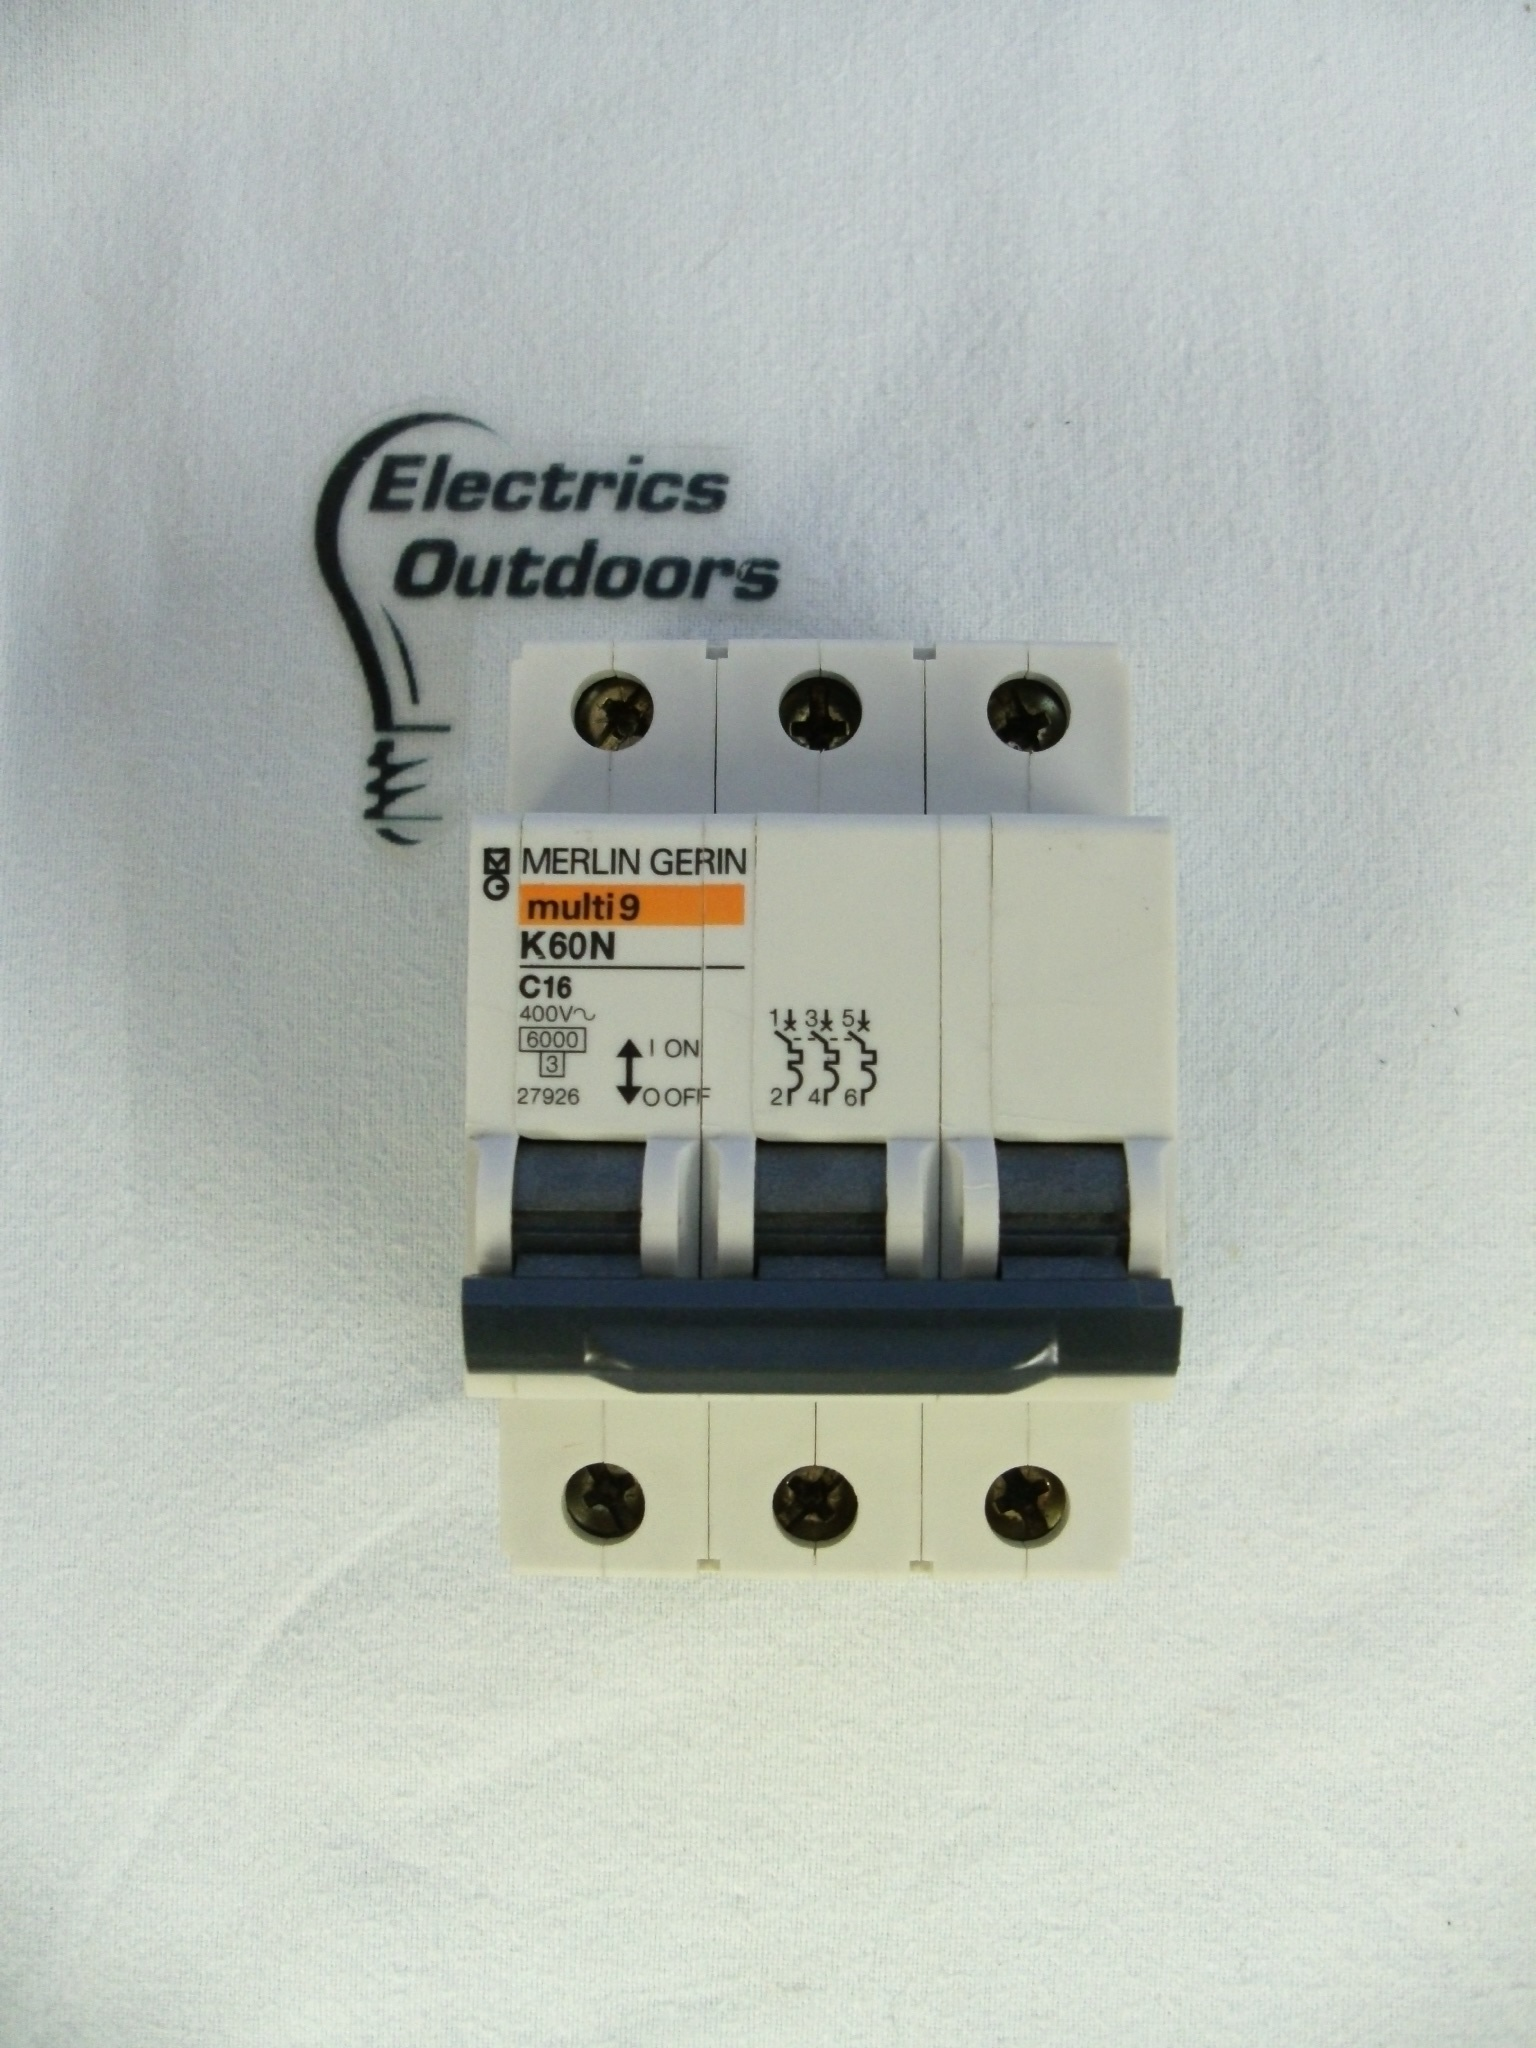 MERLIN 16 AMP TYPE C 6 kA TRIPLE POLE MCB CIRCUIT BREAKER MULTI 9 K60N 27926